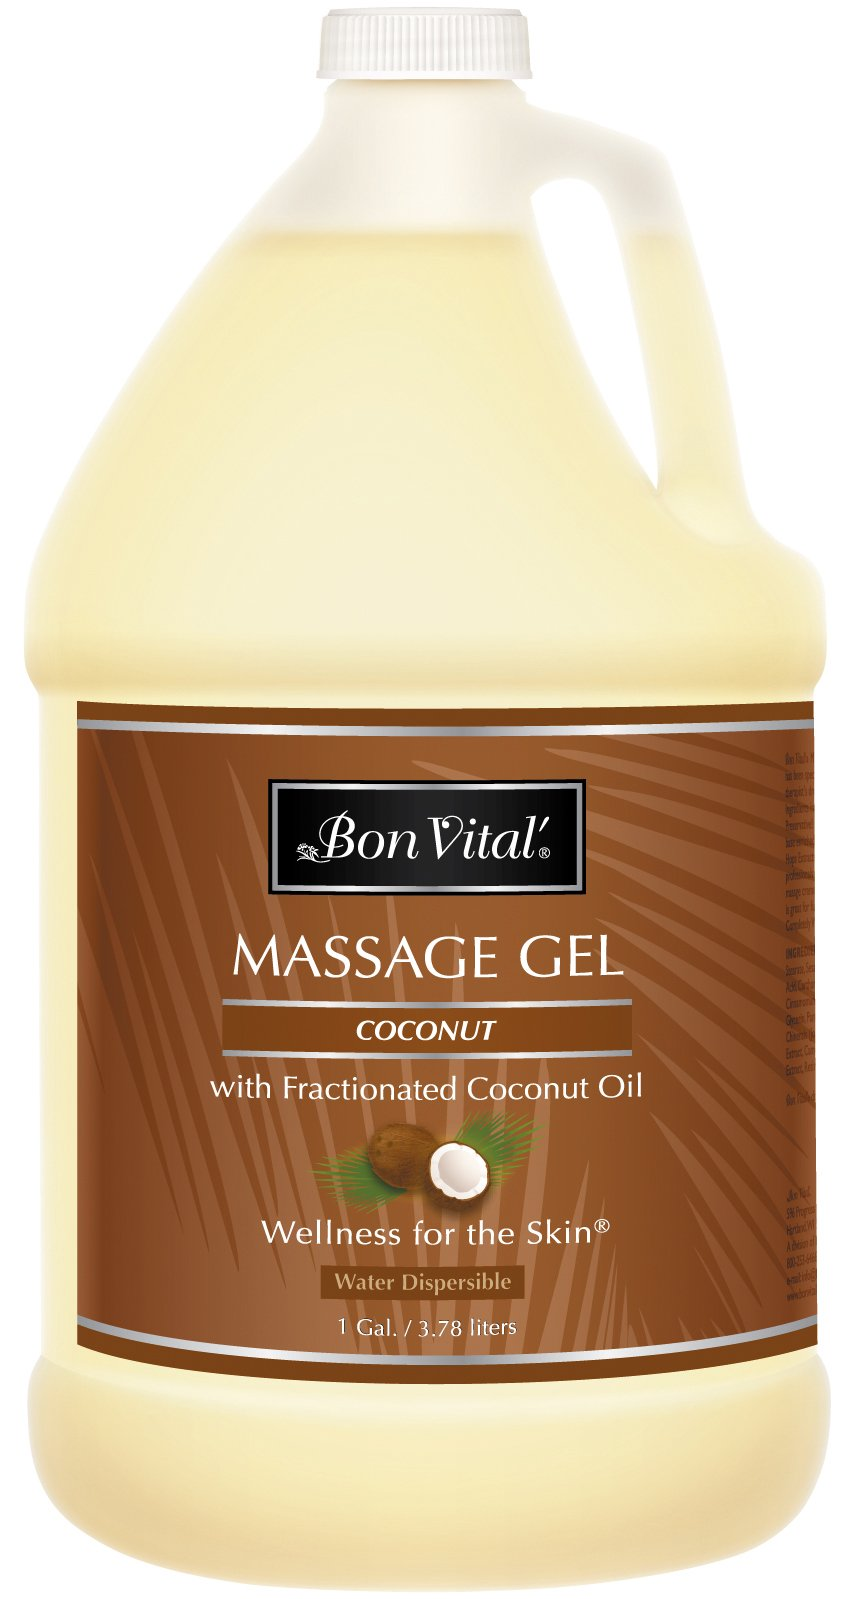 Bon Vital' Coconut Massage Gel Made with 100% Pure Fractionated Coconut Oil, Great for At-Home Use in Relaxing Back Massages & Neck Massages, Moisturizes Skin Without Clogging Pores,1 Gallon Bottle